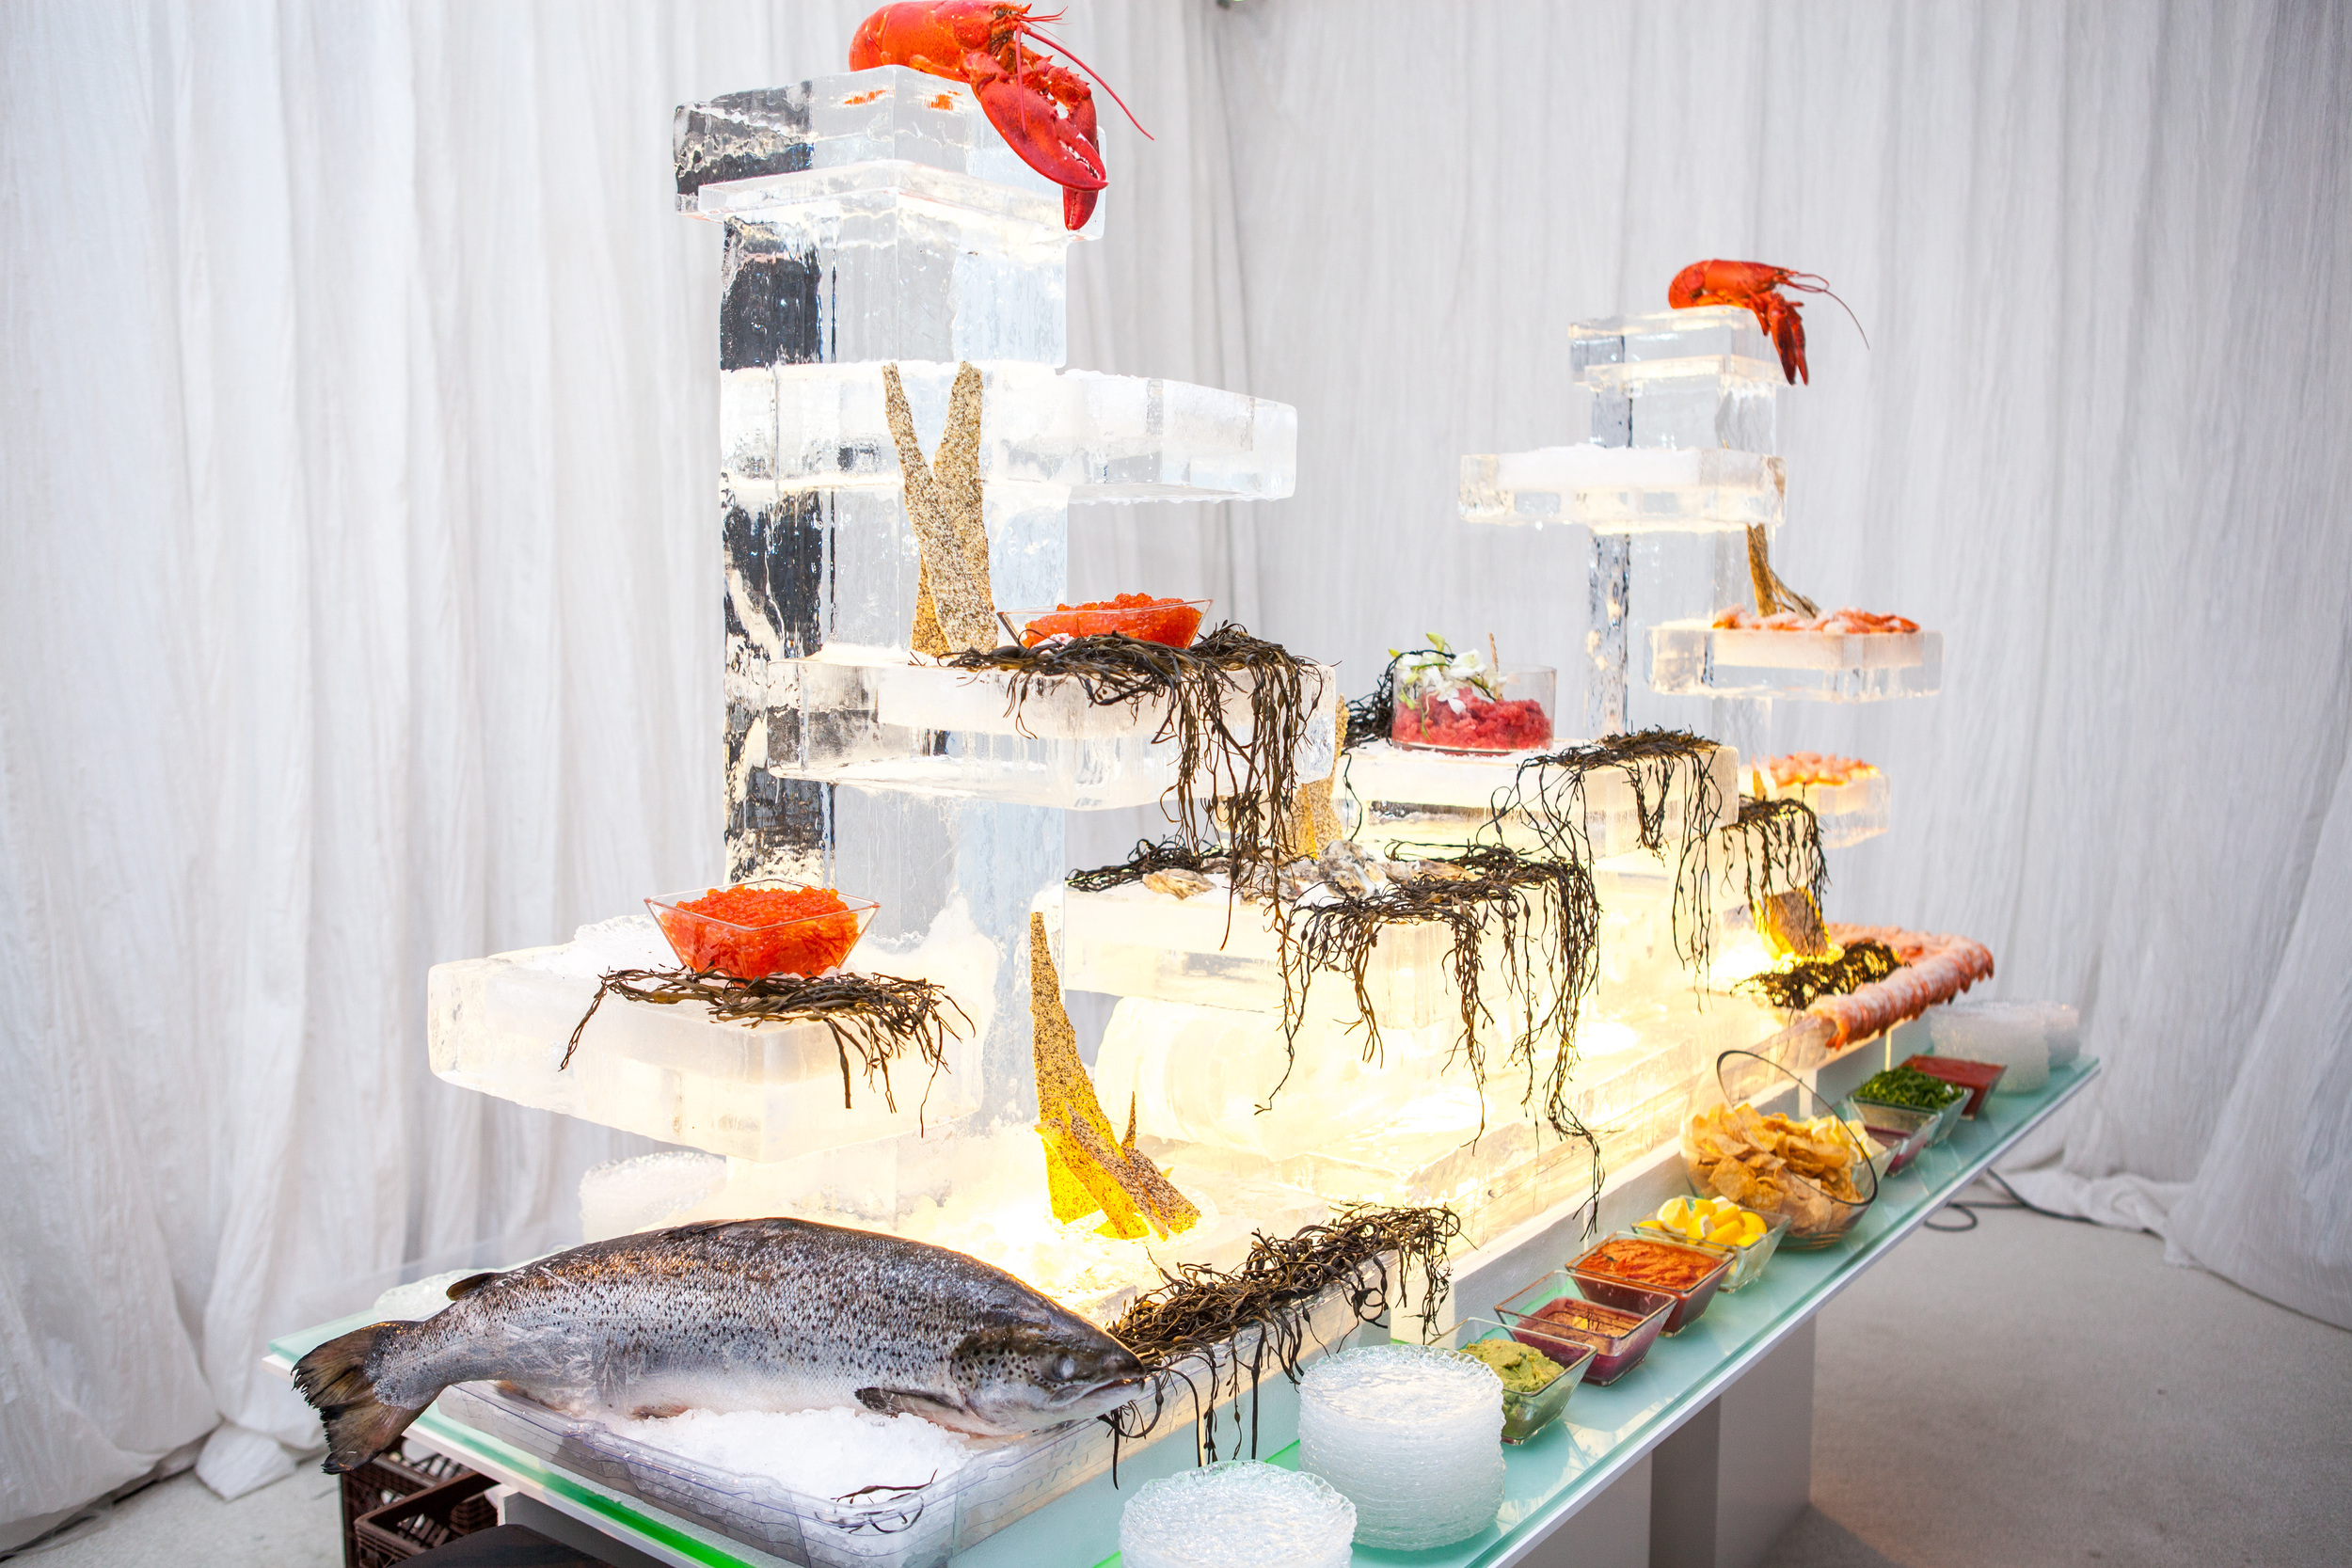 Seafood Station with Ice Sculpture